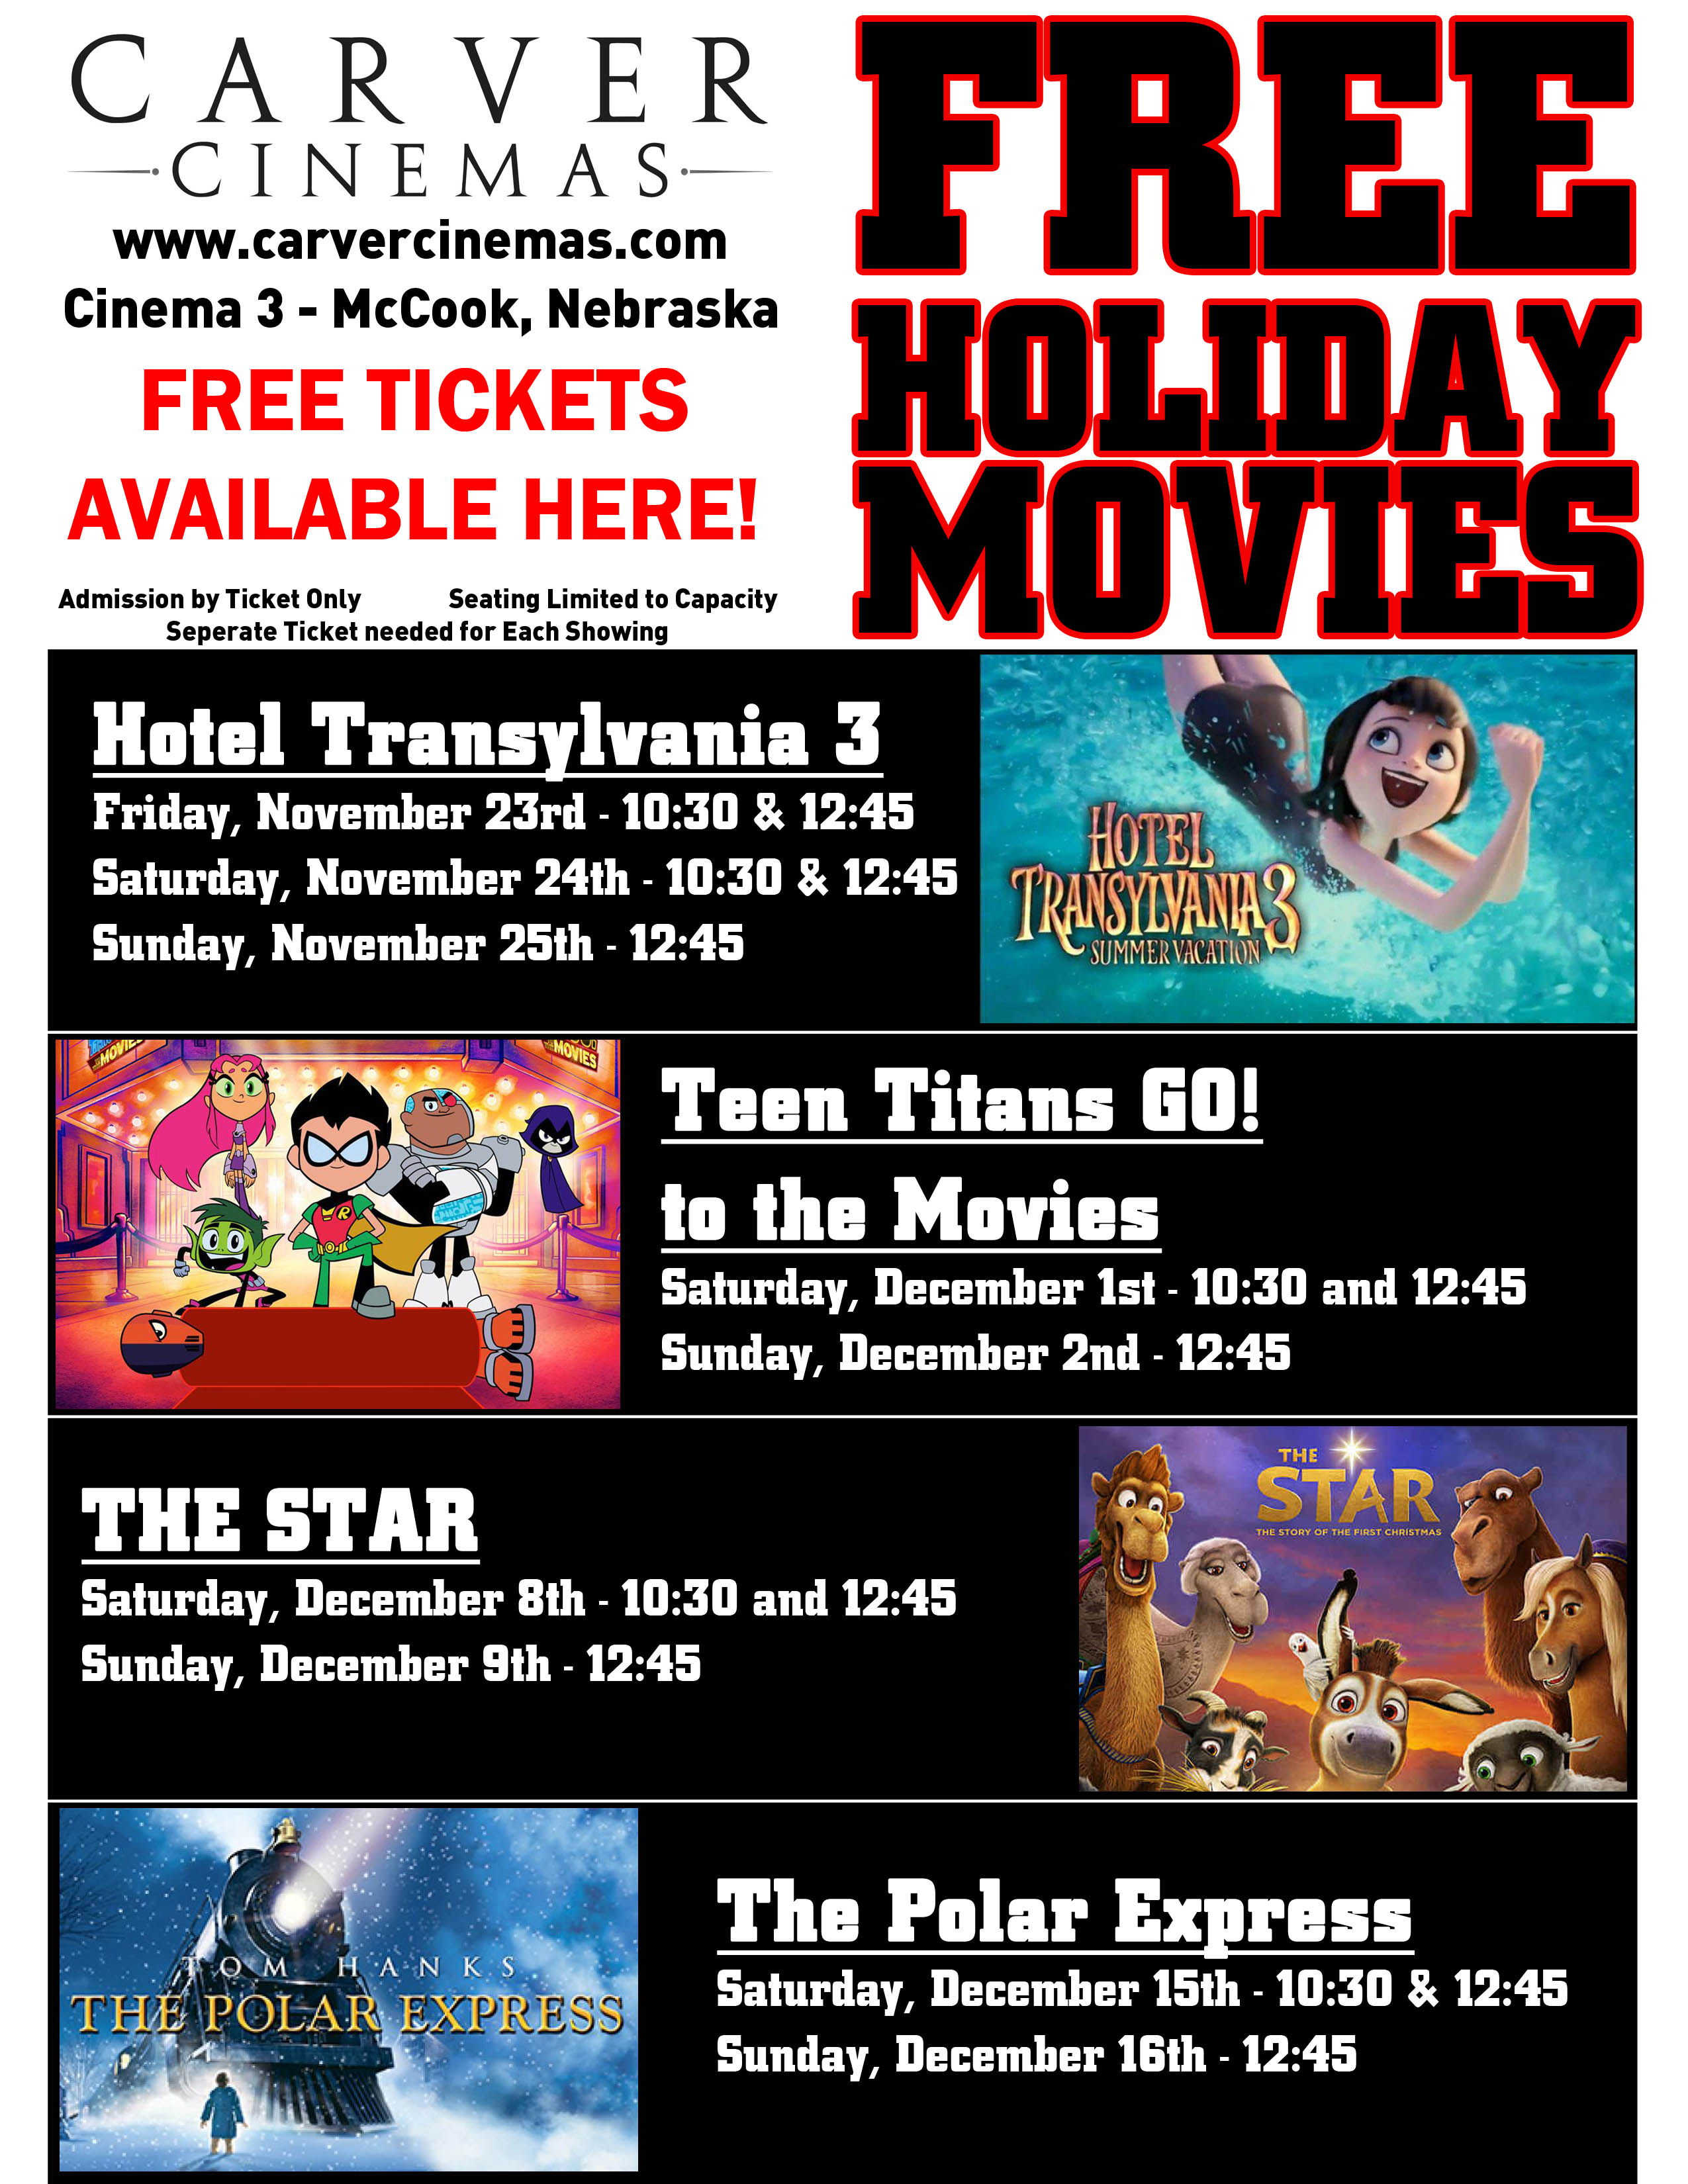 Carver Cinemas Mccook Ne Free Holiday Movies